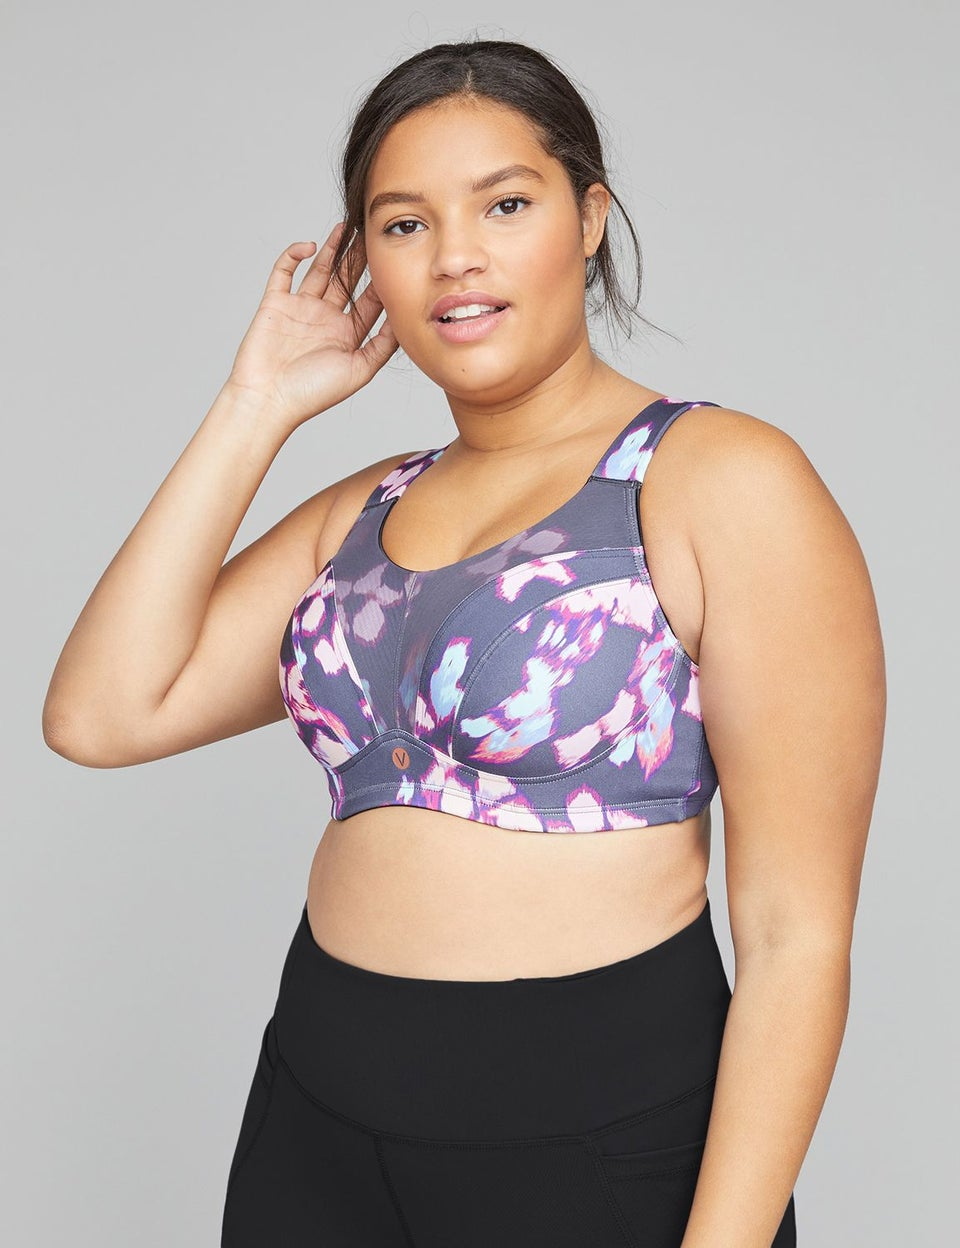 5 Sports Bras That Are Big-Boob Approved